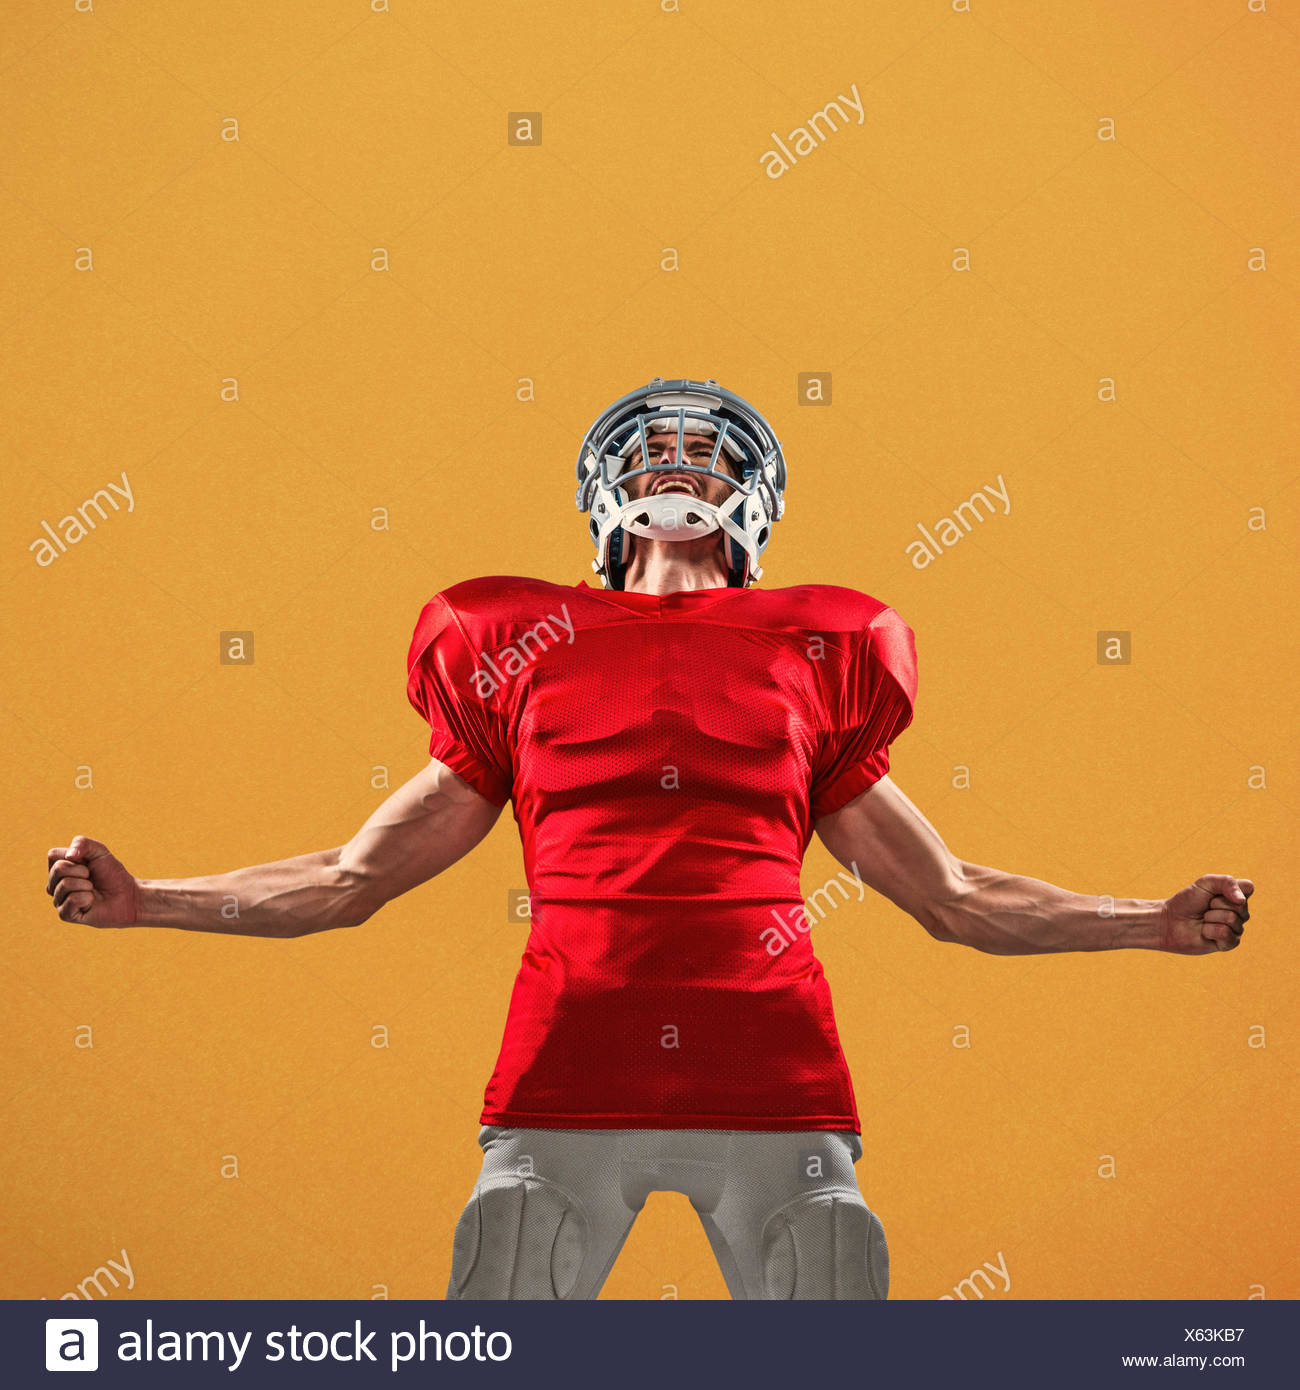 31e4b5b63f7 red american football jersey | Coupon code